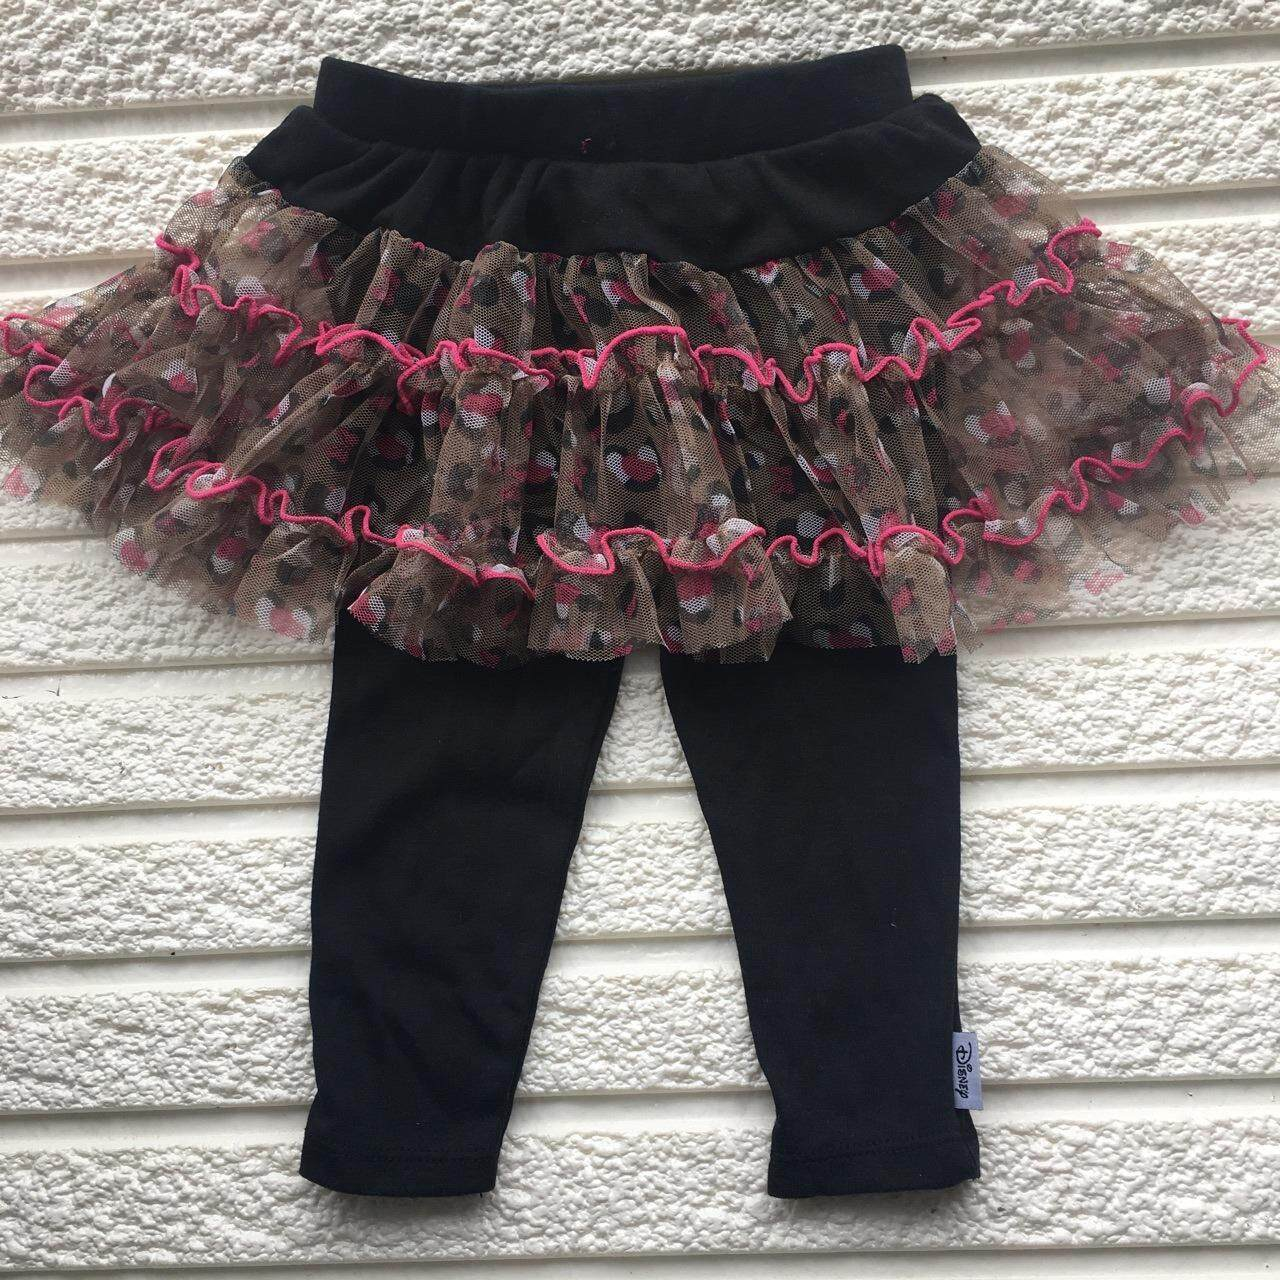 Disney Baby Girls Size Tutu Skirt with attached leggings/pants - Black